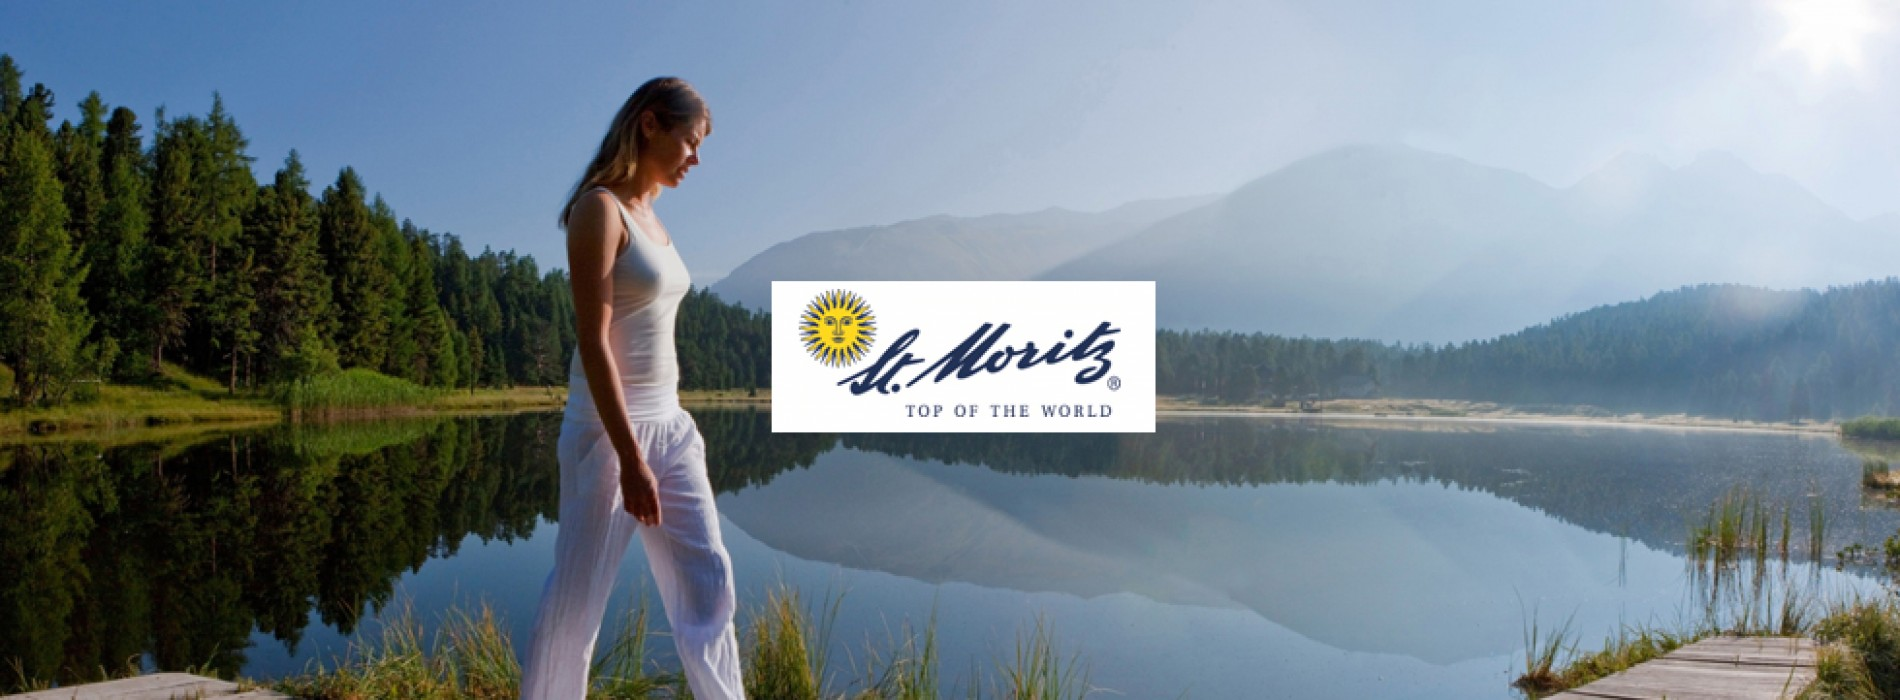 Scintillating St. Moritz is an amazing Summer Alpine Destination